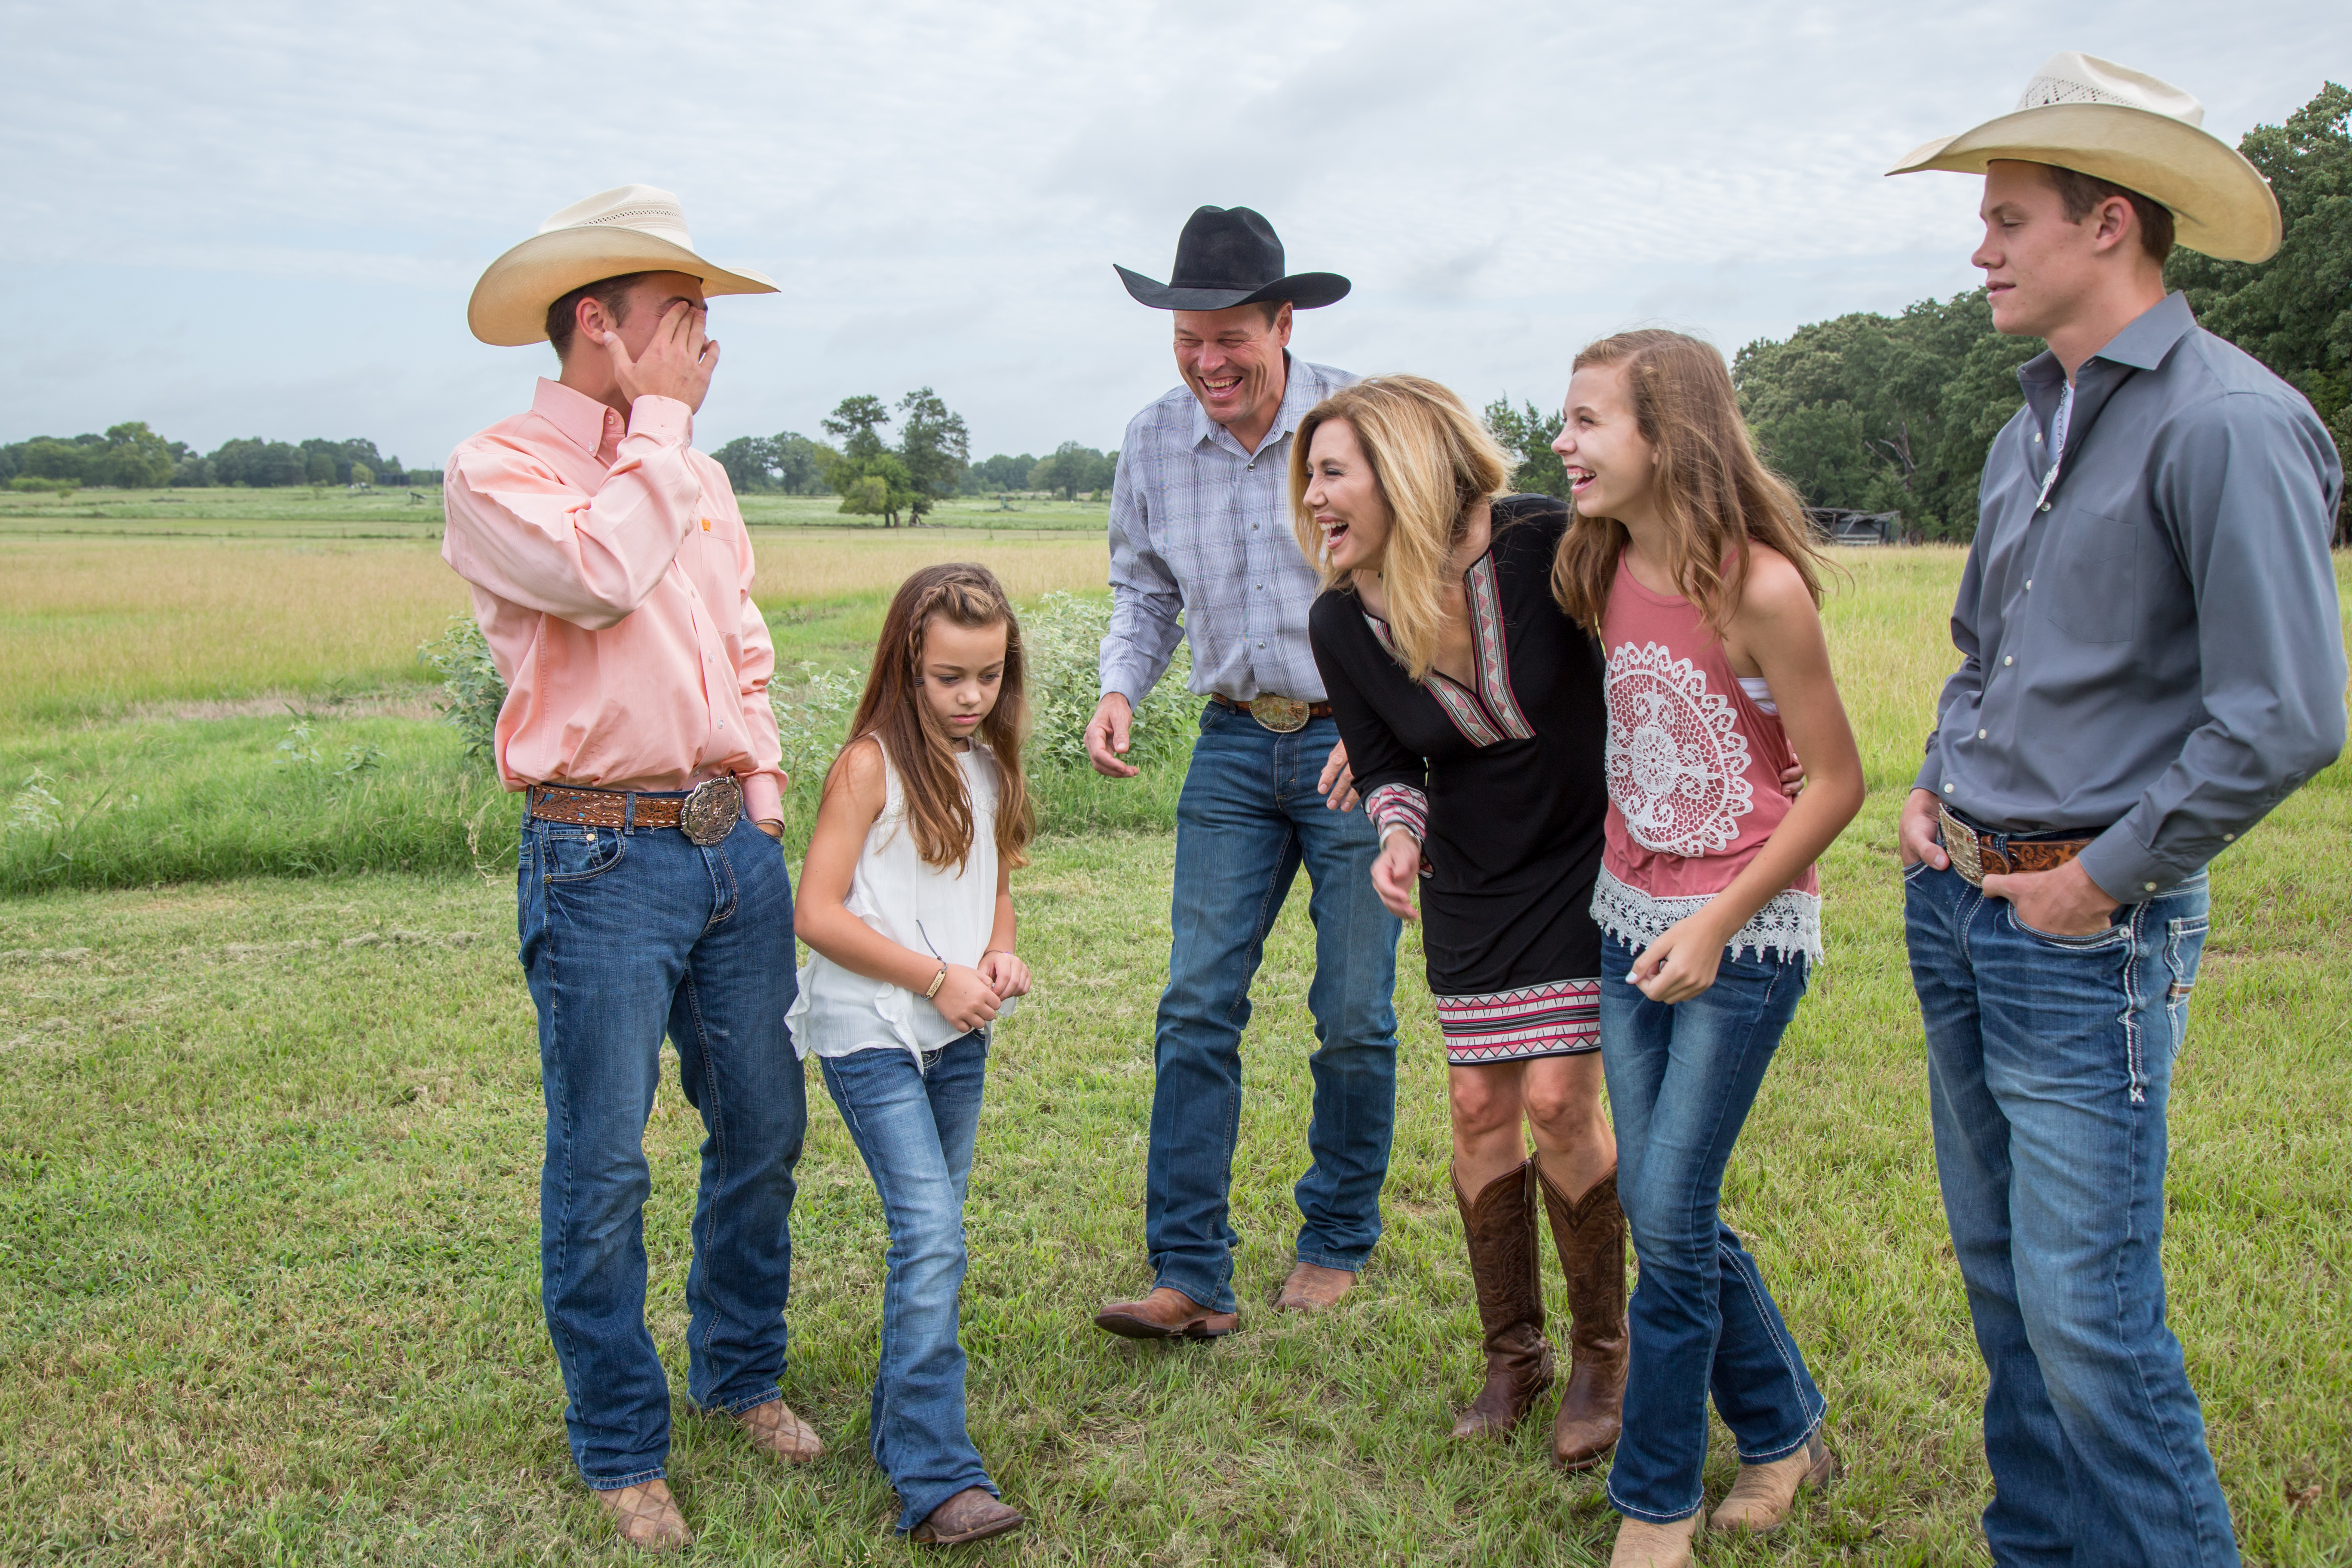 Rope and Candice Myers and family